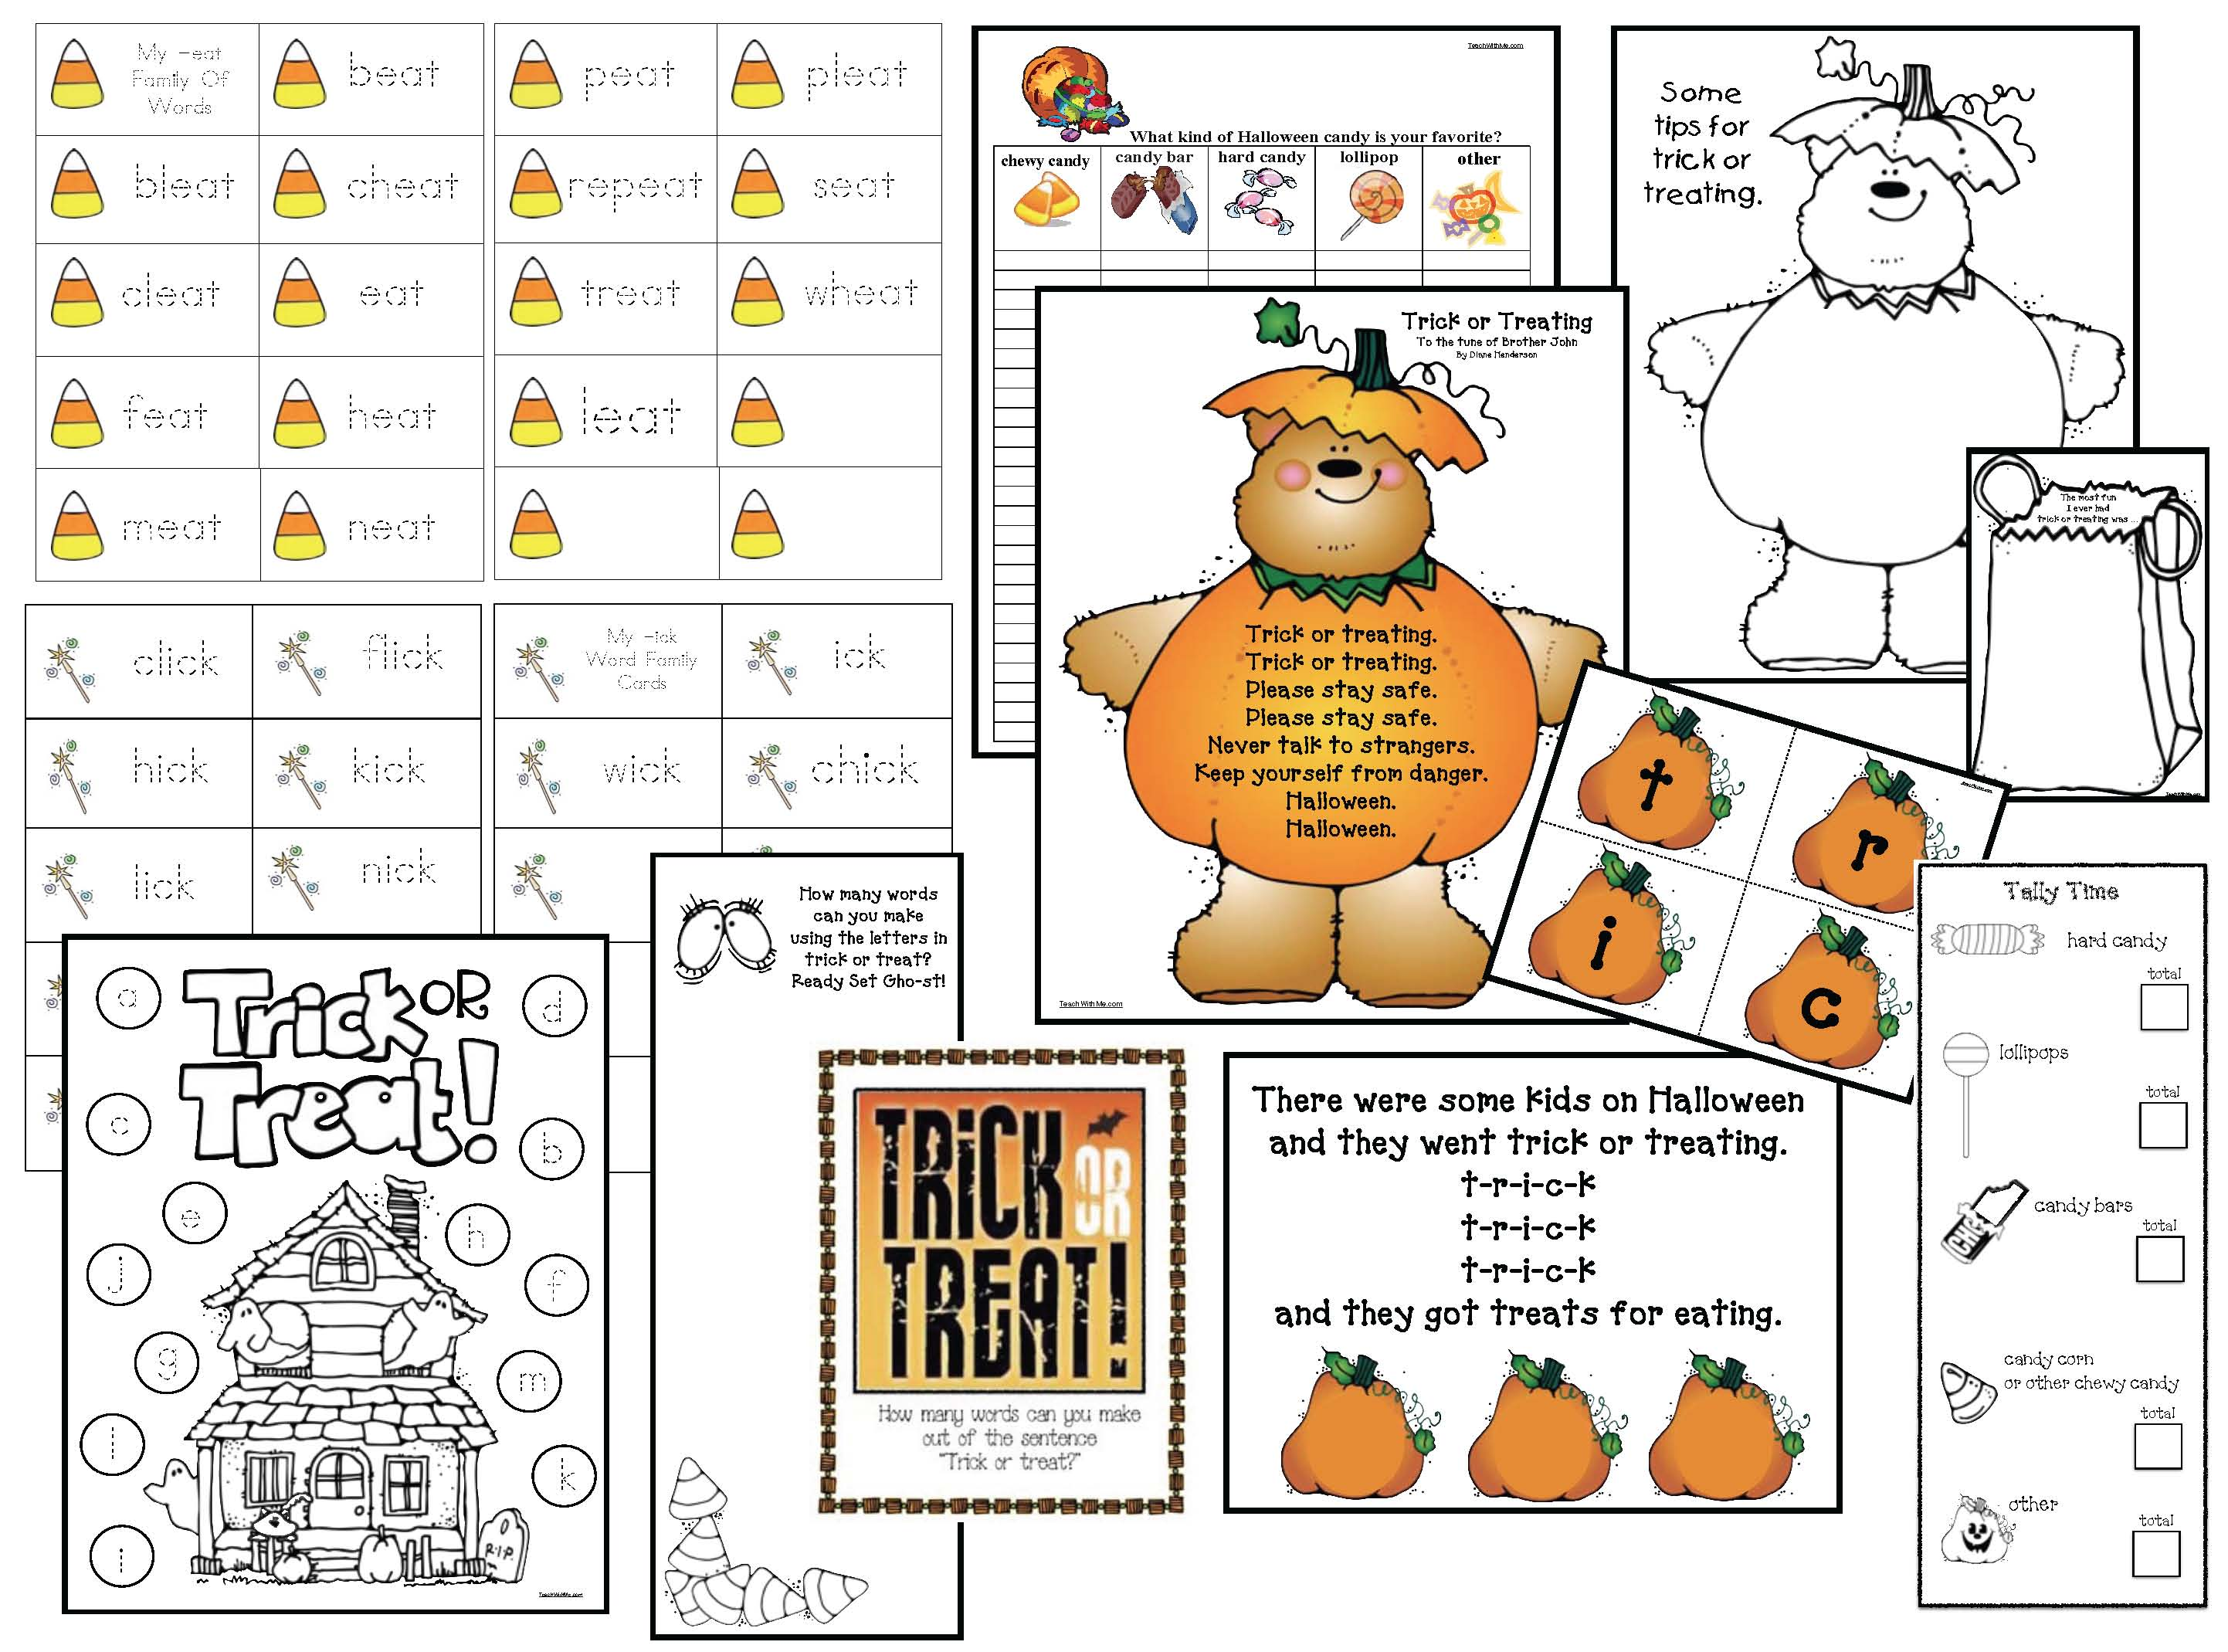 hallloween games, halloween crafts, halloween activities, halloween worksheets, halloween writing prompts, halloween games, shape activities, I spy worksheets